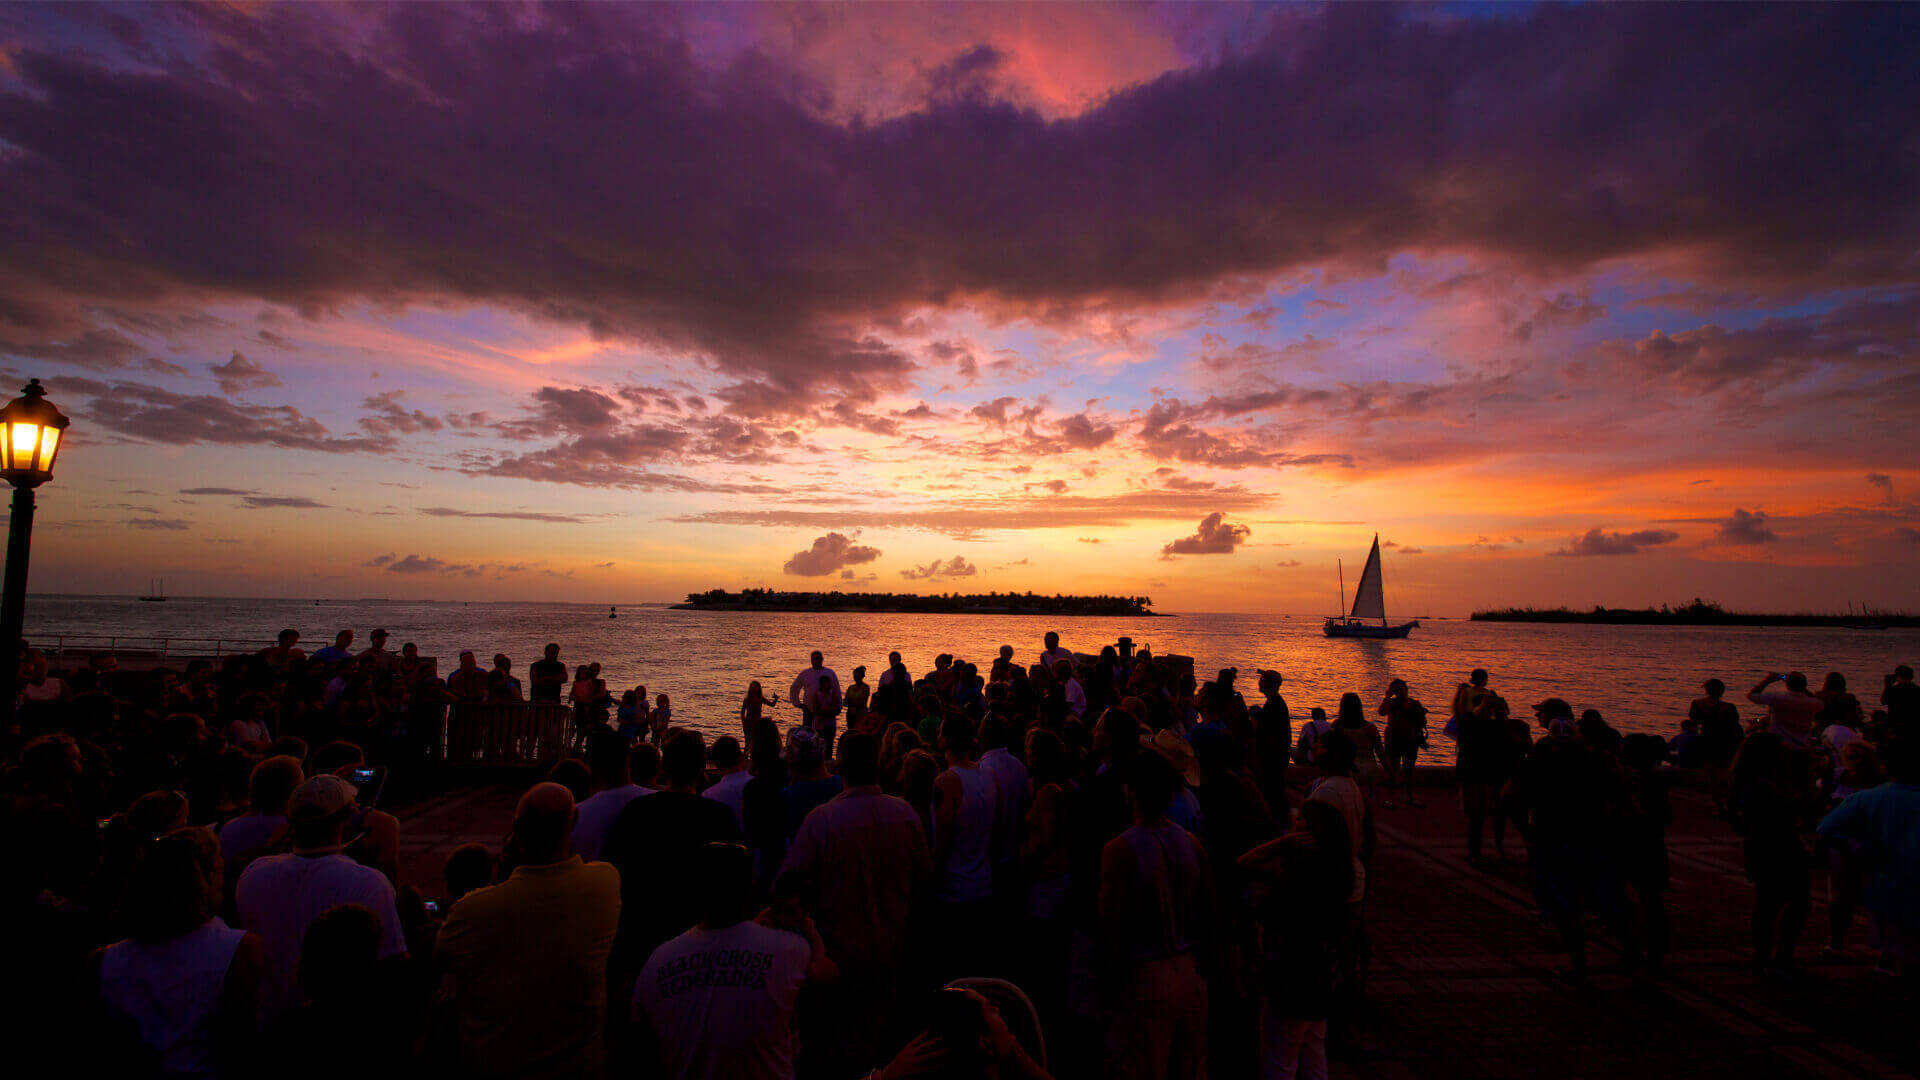 families enjoying the sunset in mallory square in key west